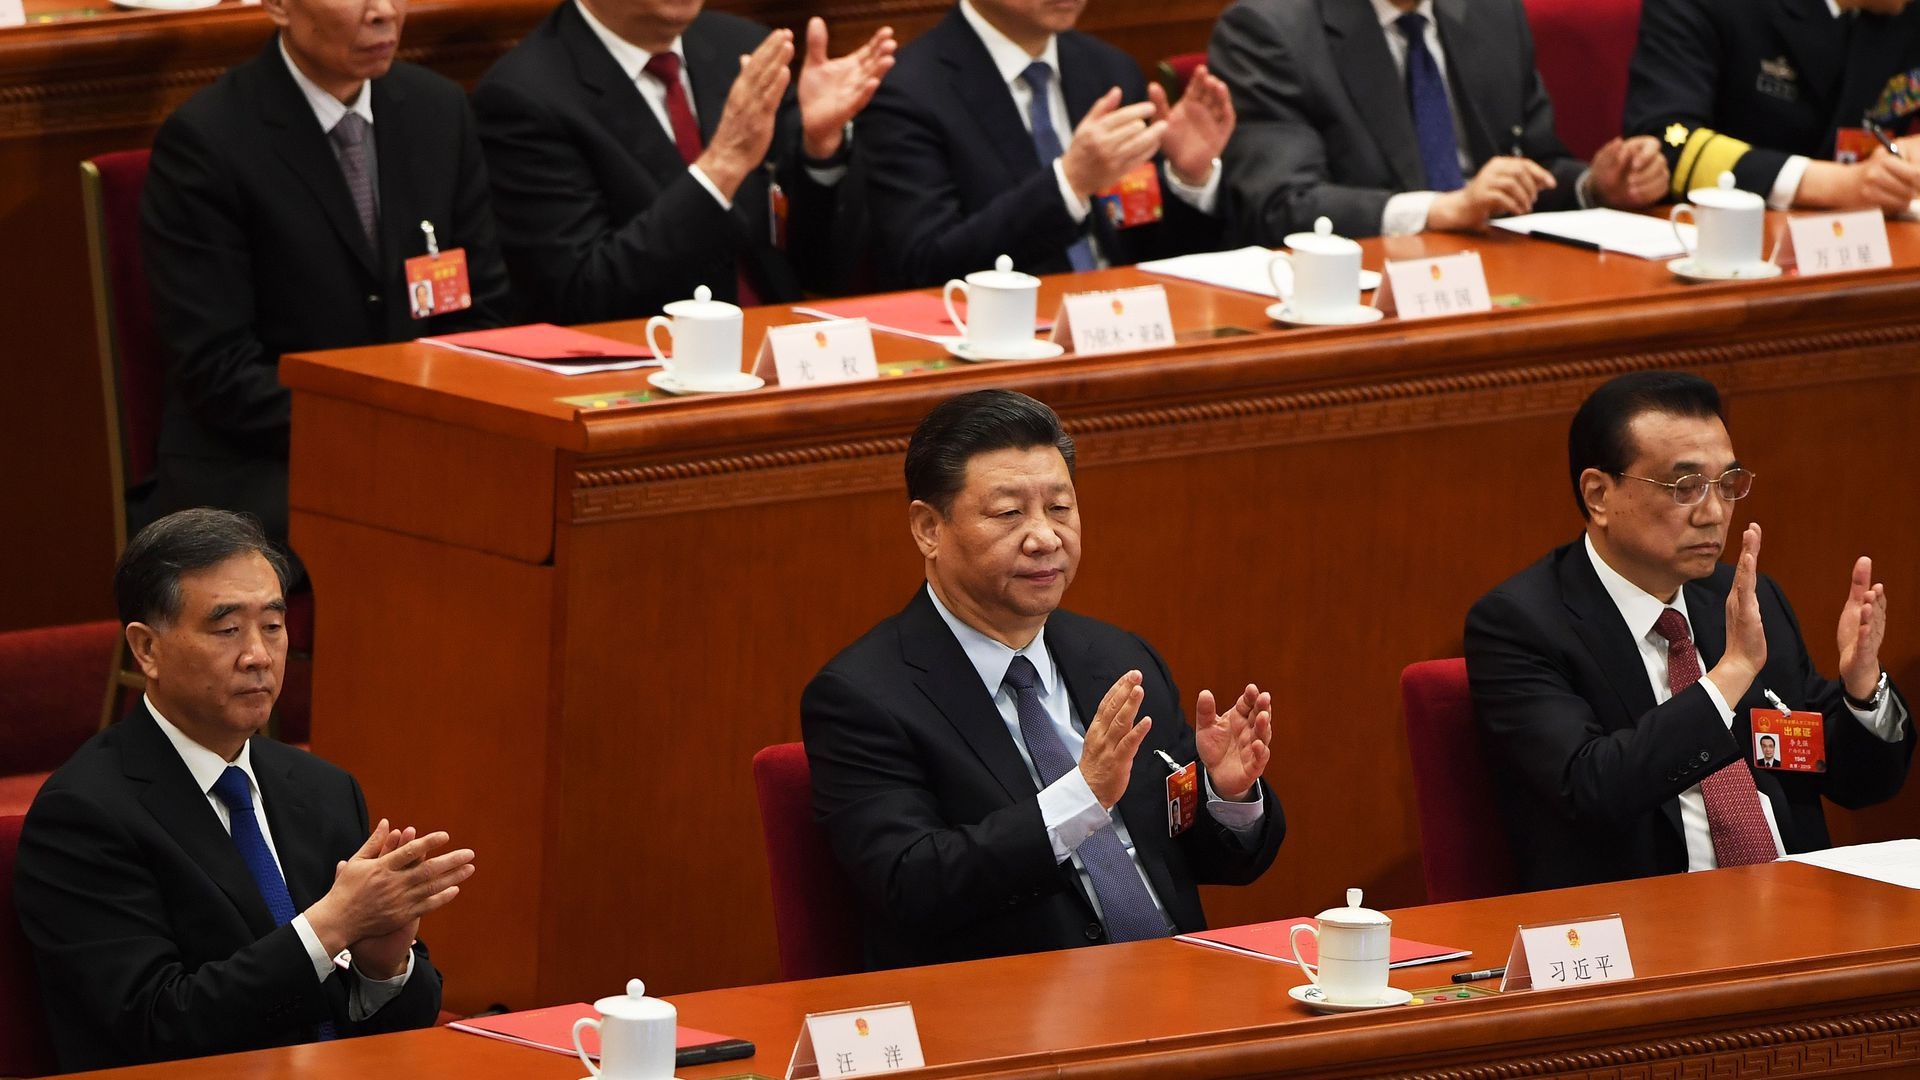 President Xi Jinping and other Chinese officials applaud at the National People's Congress.